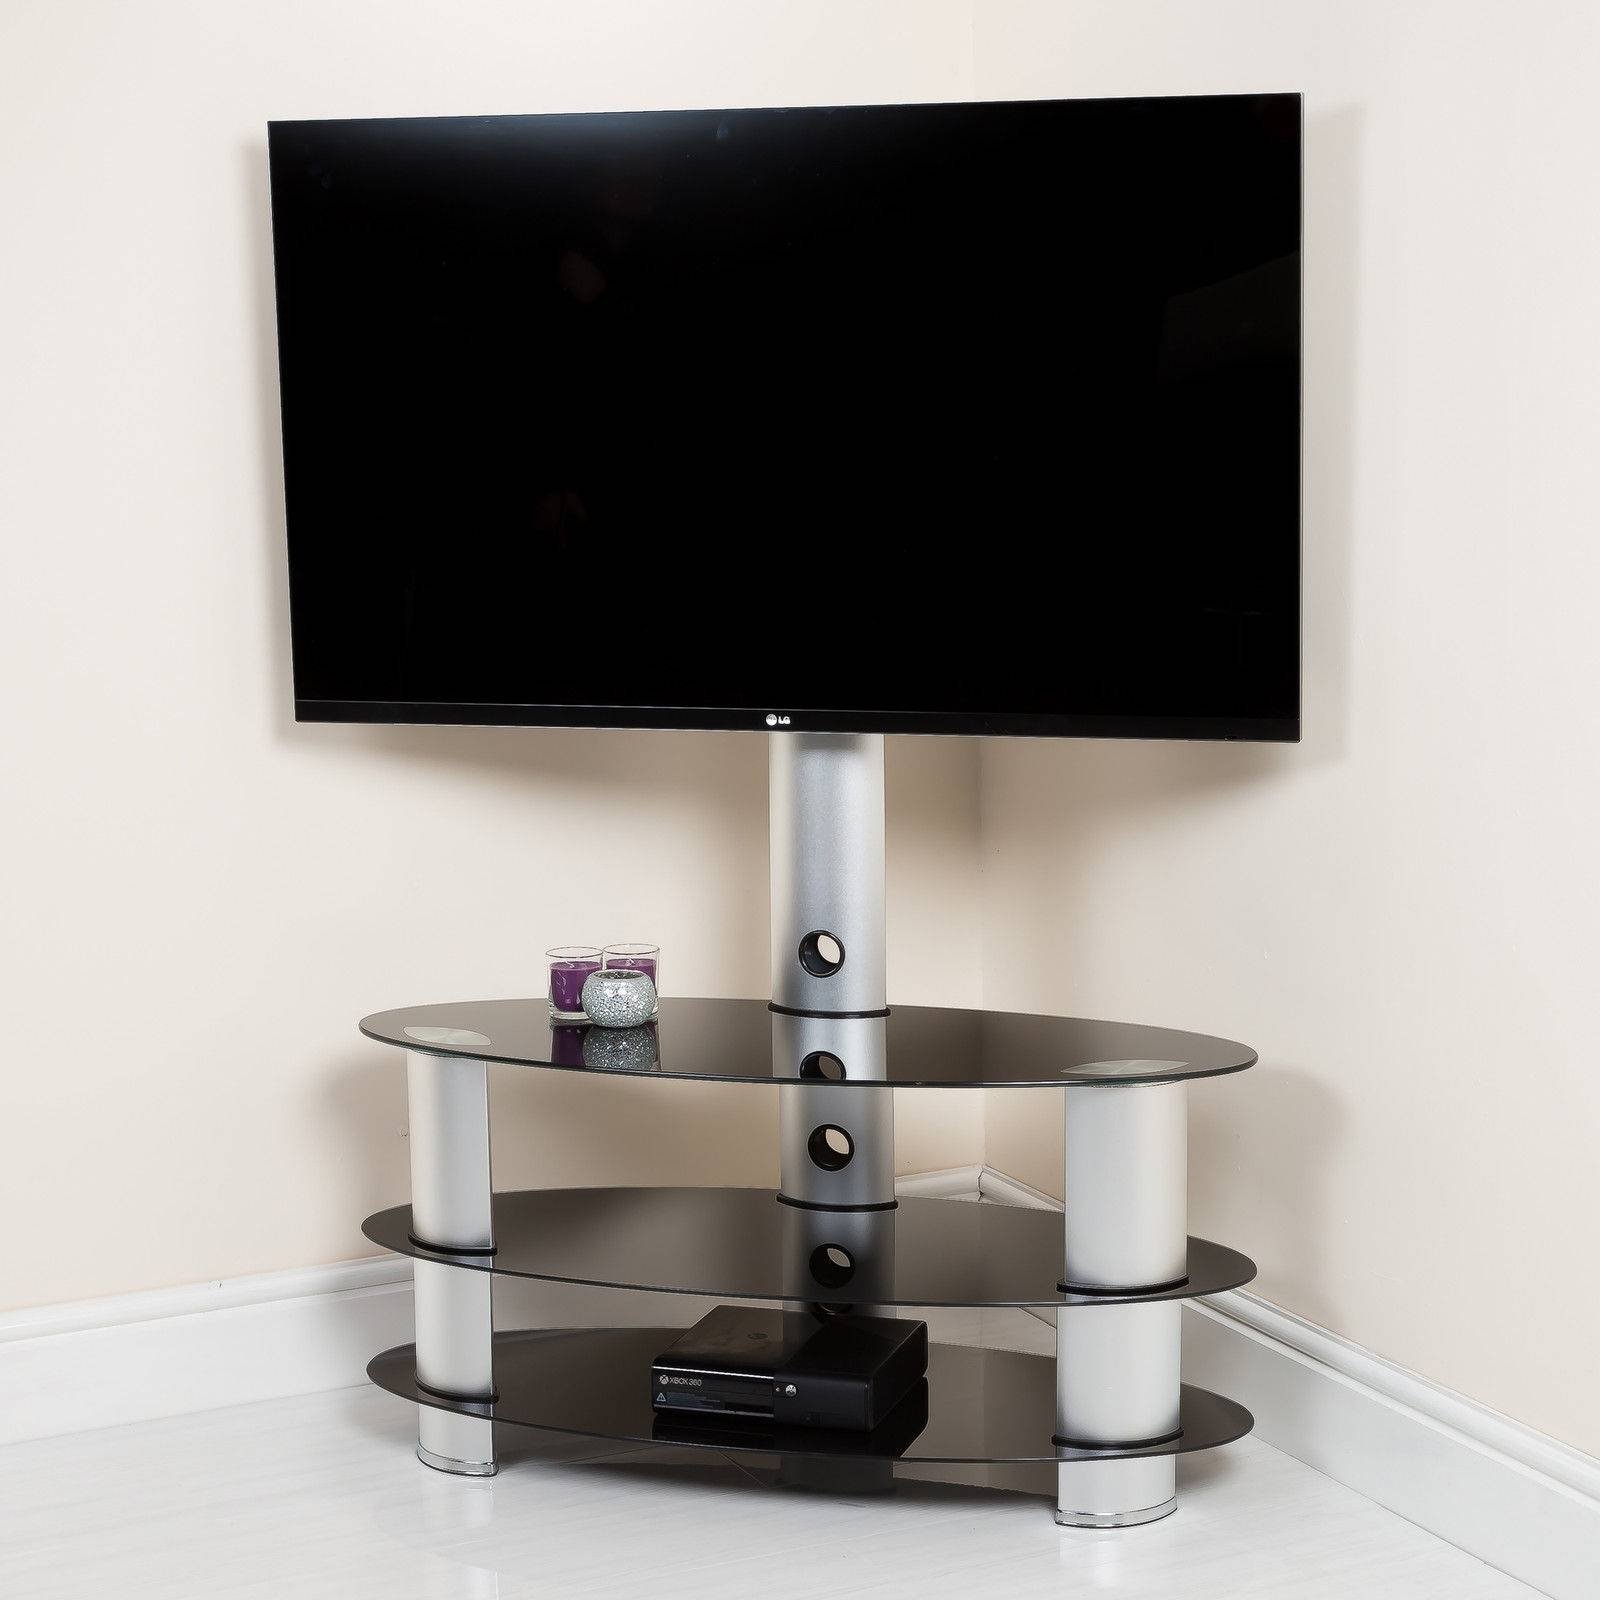 Aluminium Tv Stands | Ebay in Oval Glass Tv Stands (Image 2 of 15)